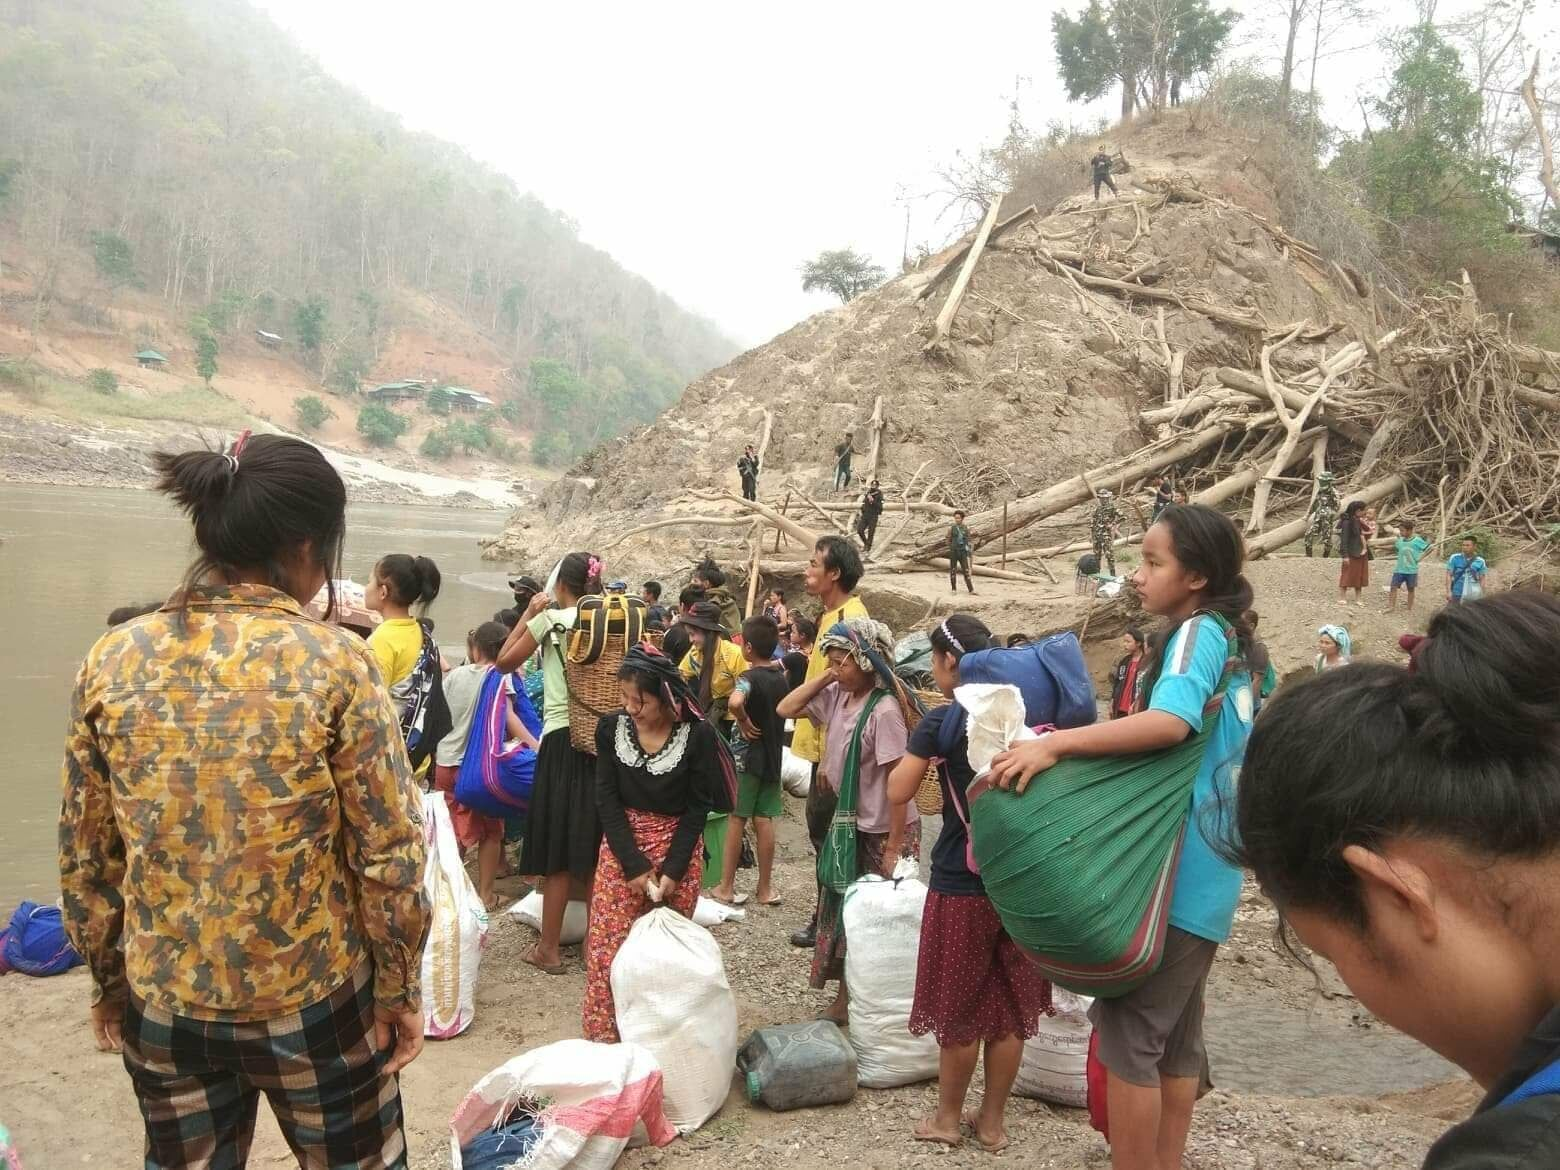 UN Human Rights Office calls for Southeast Asian countries to protect Burmese refugees | Thaiger